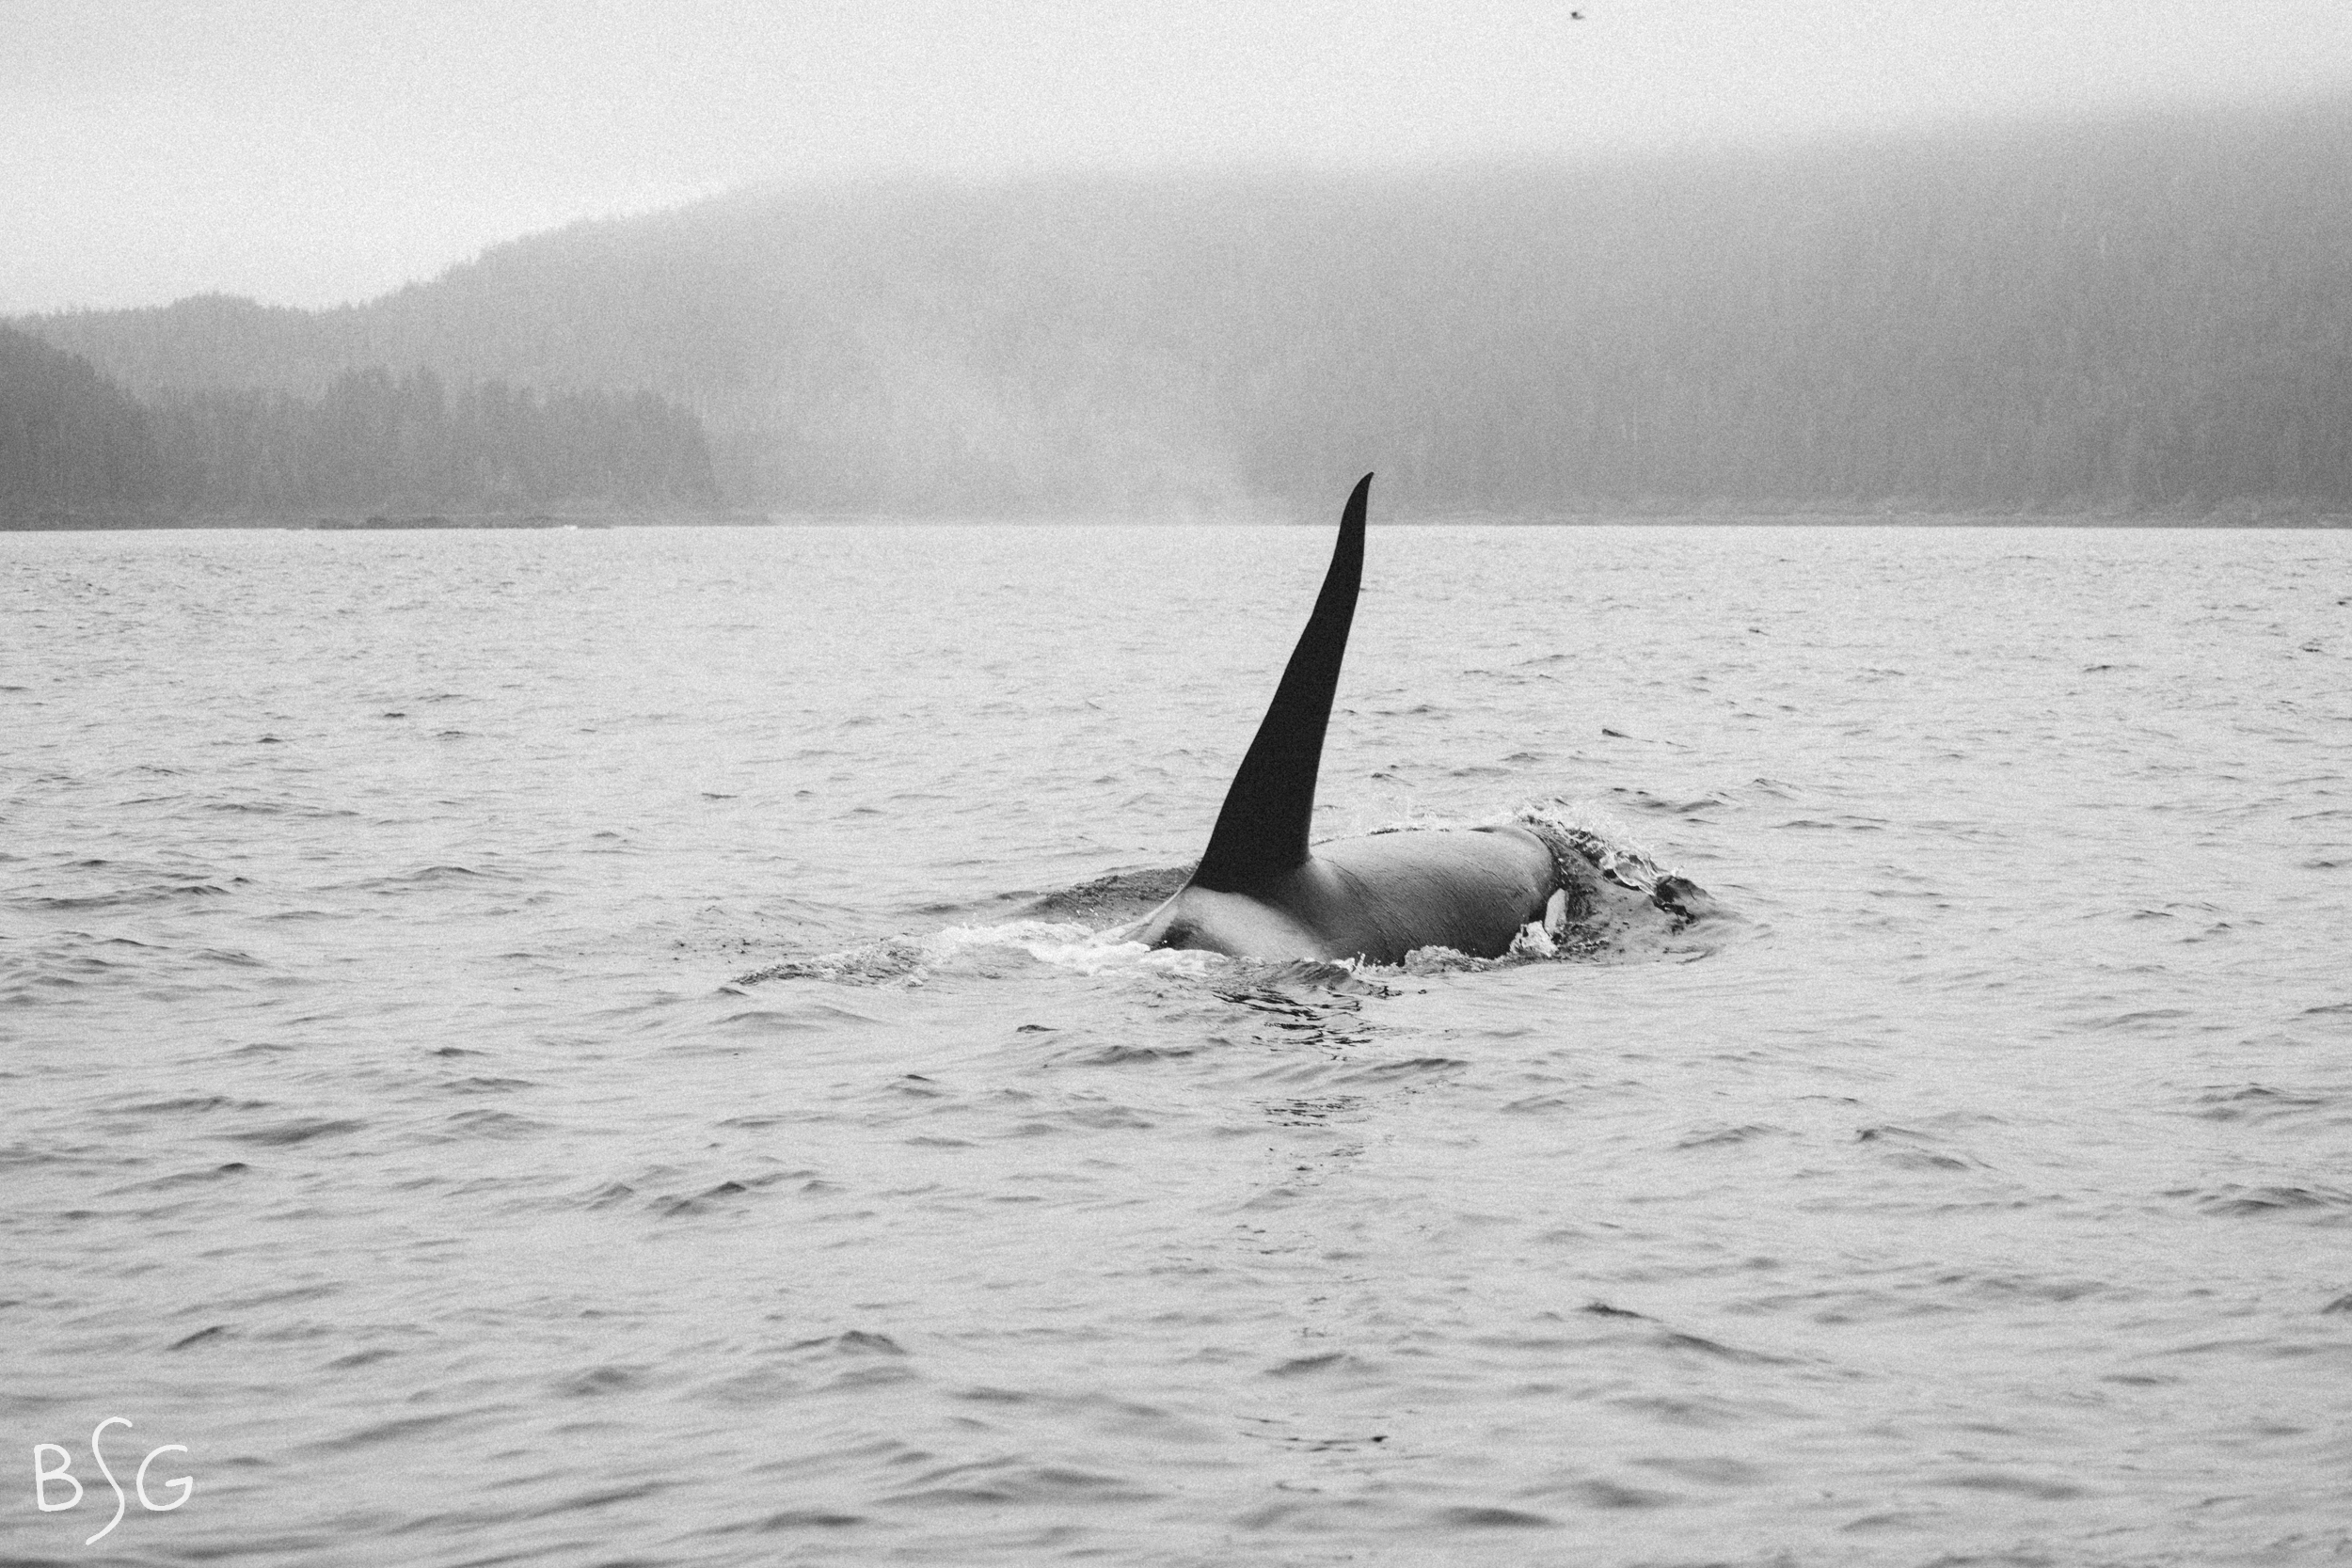 The morning began with a six foot tall dorsal fin slicing through the sea in front of us. This is a transient orca, he was solo prowling through the waters hunting for marine mammals. In this way, both Wade and this orca share a similar niche in this ecosystem- hunting marine mammals. Wade has had many encounters with the local pod of killer whales sometimes following, circling and diving below his small skiff, especially when freshly hunted otters or seals are on board.